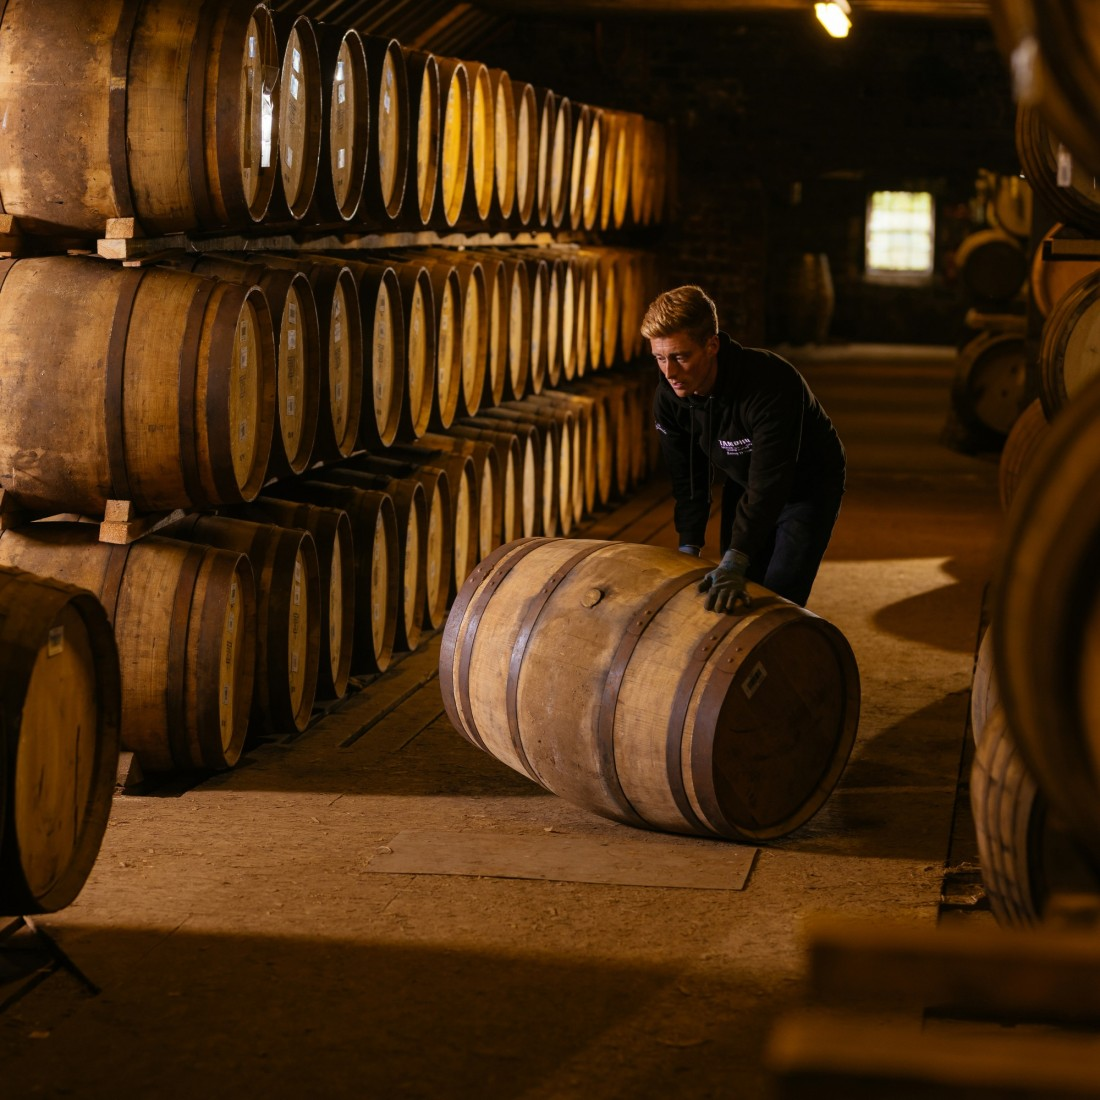 Tour of Tamdhu Distillery and One Night's Stay at Dowan's Hotel for 2 People / Charity Lot